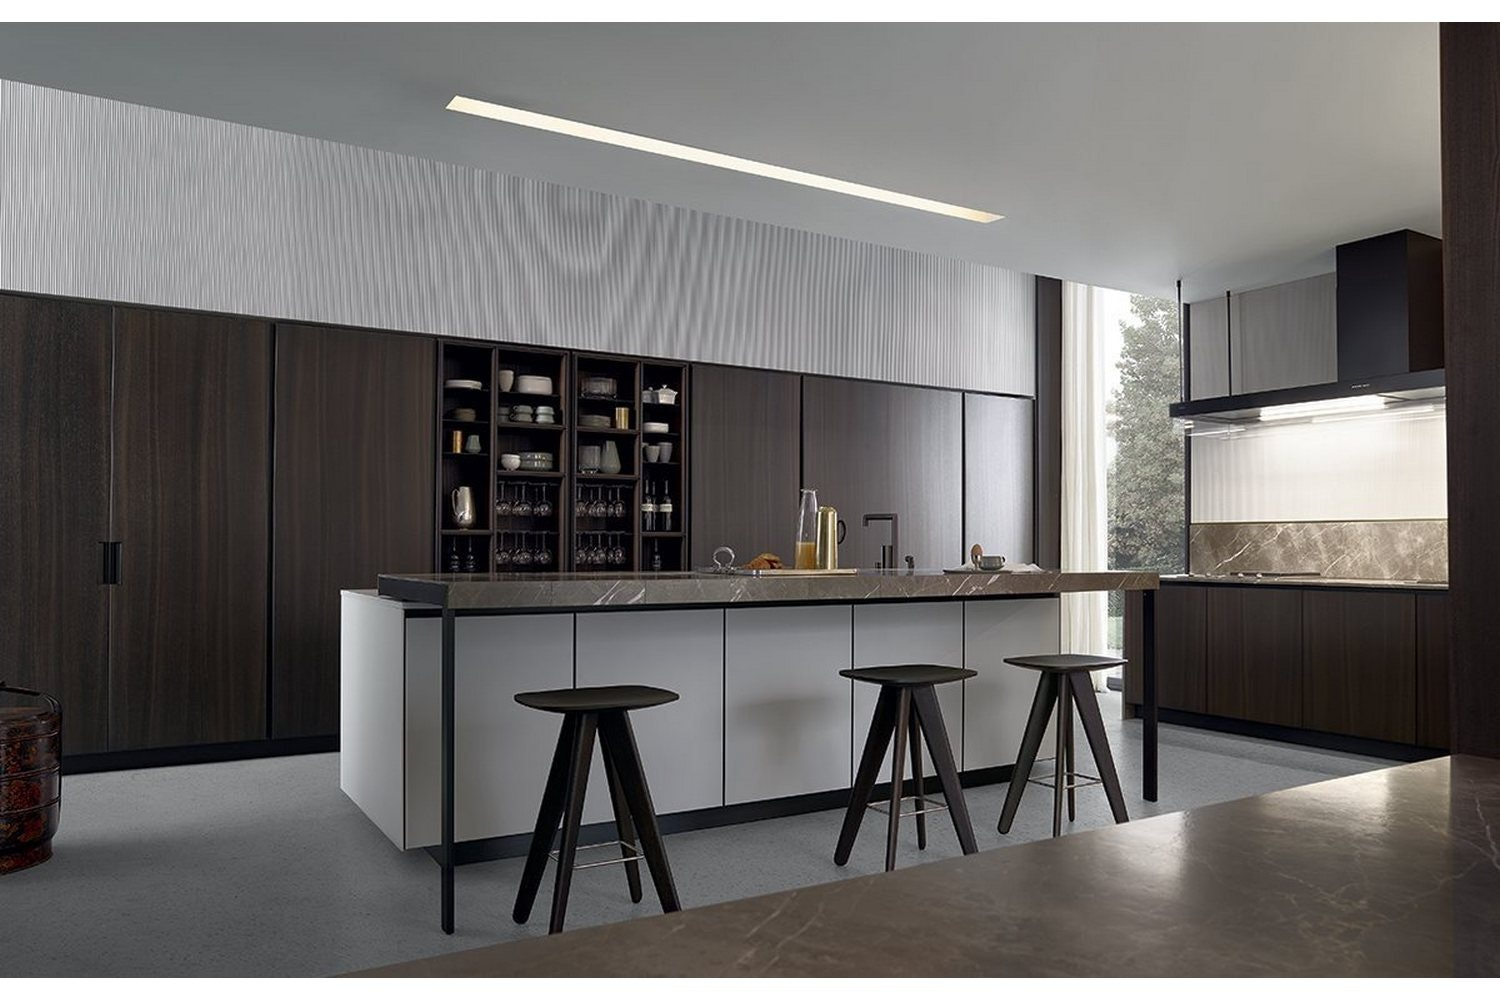 Arthena Kitchen by R&D Varenna for Poliform